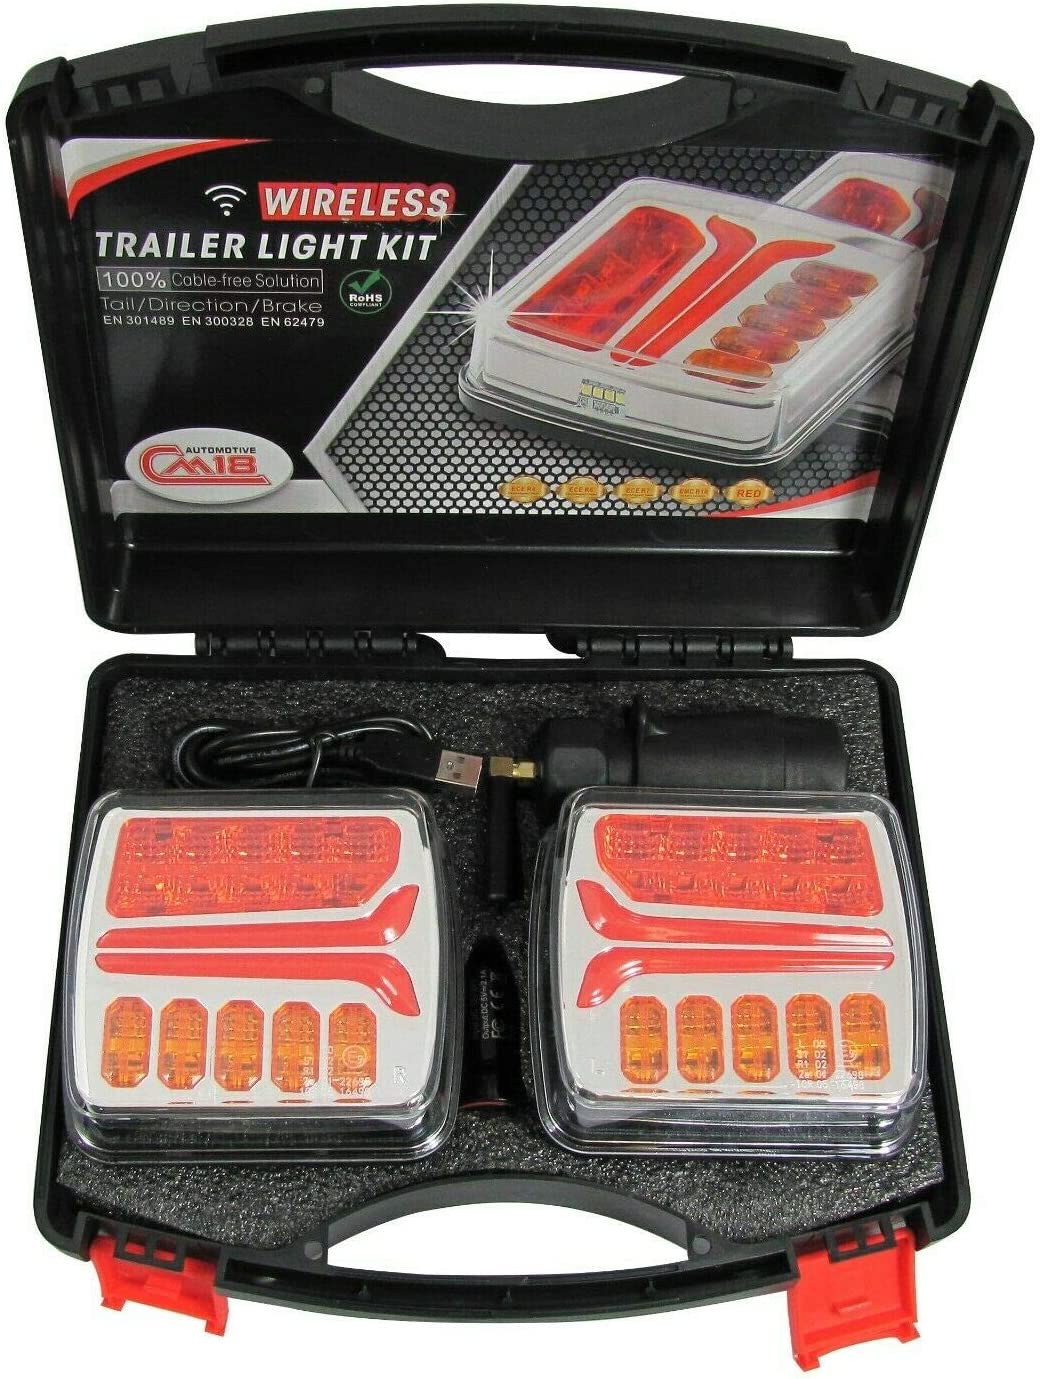 flexzon Wireless Led Magnetic Lights Kit For Trailer Tractor Agricultural Vehicles E9